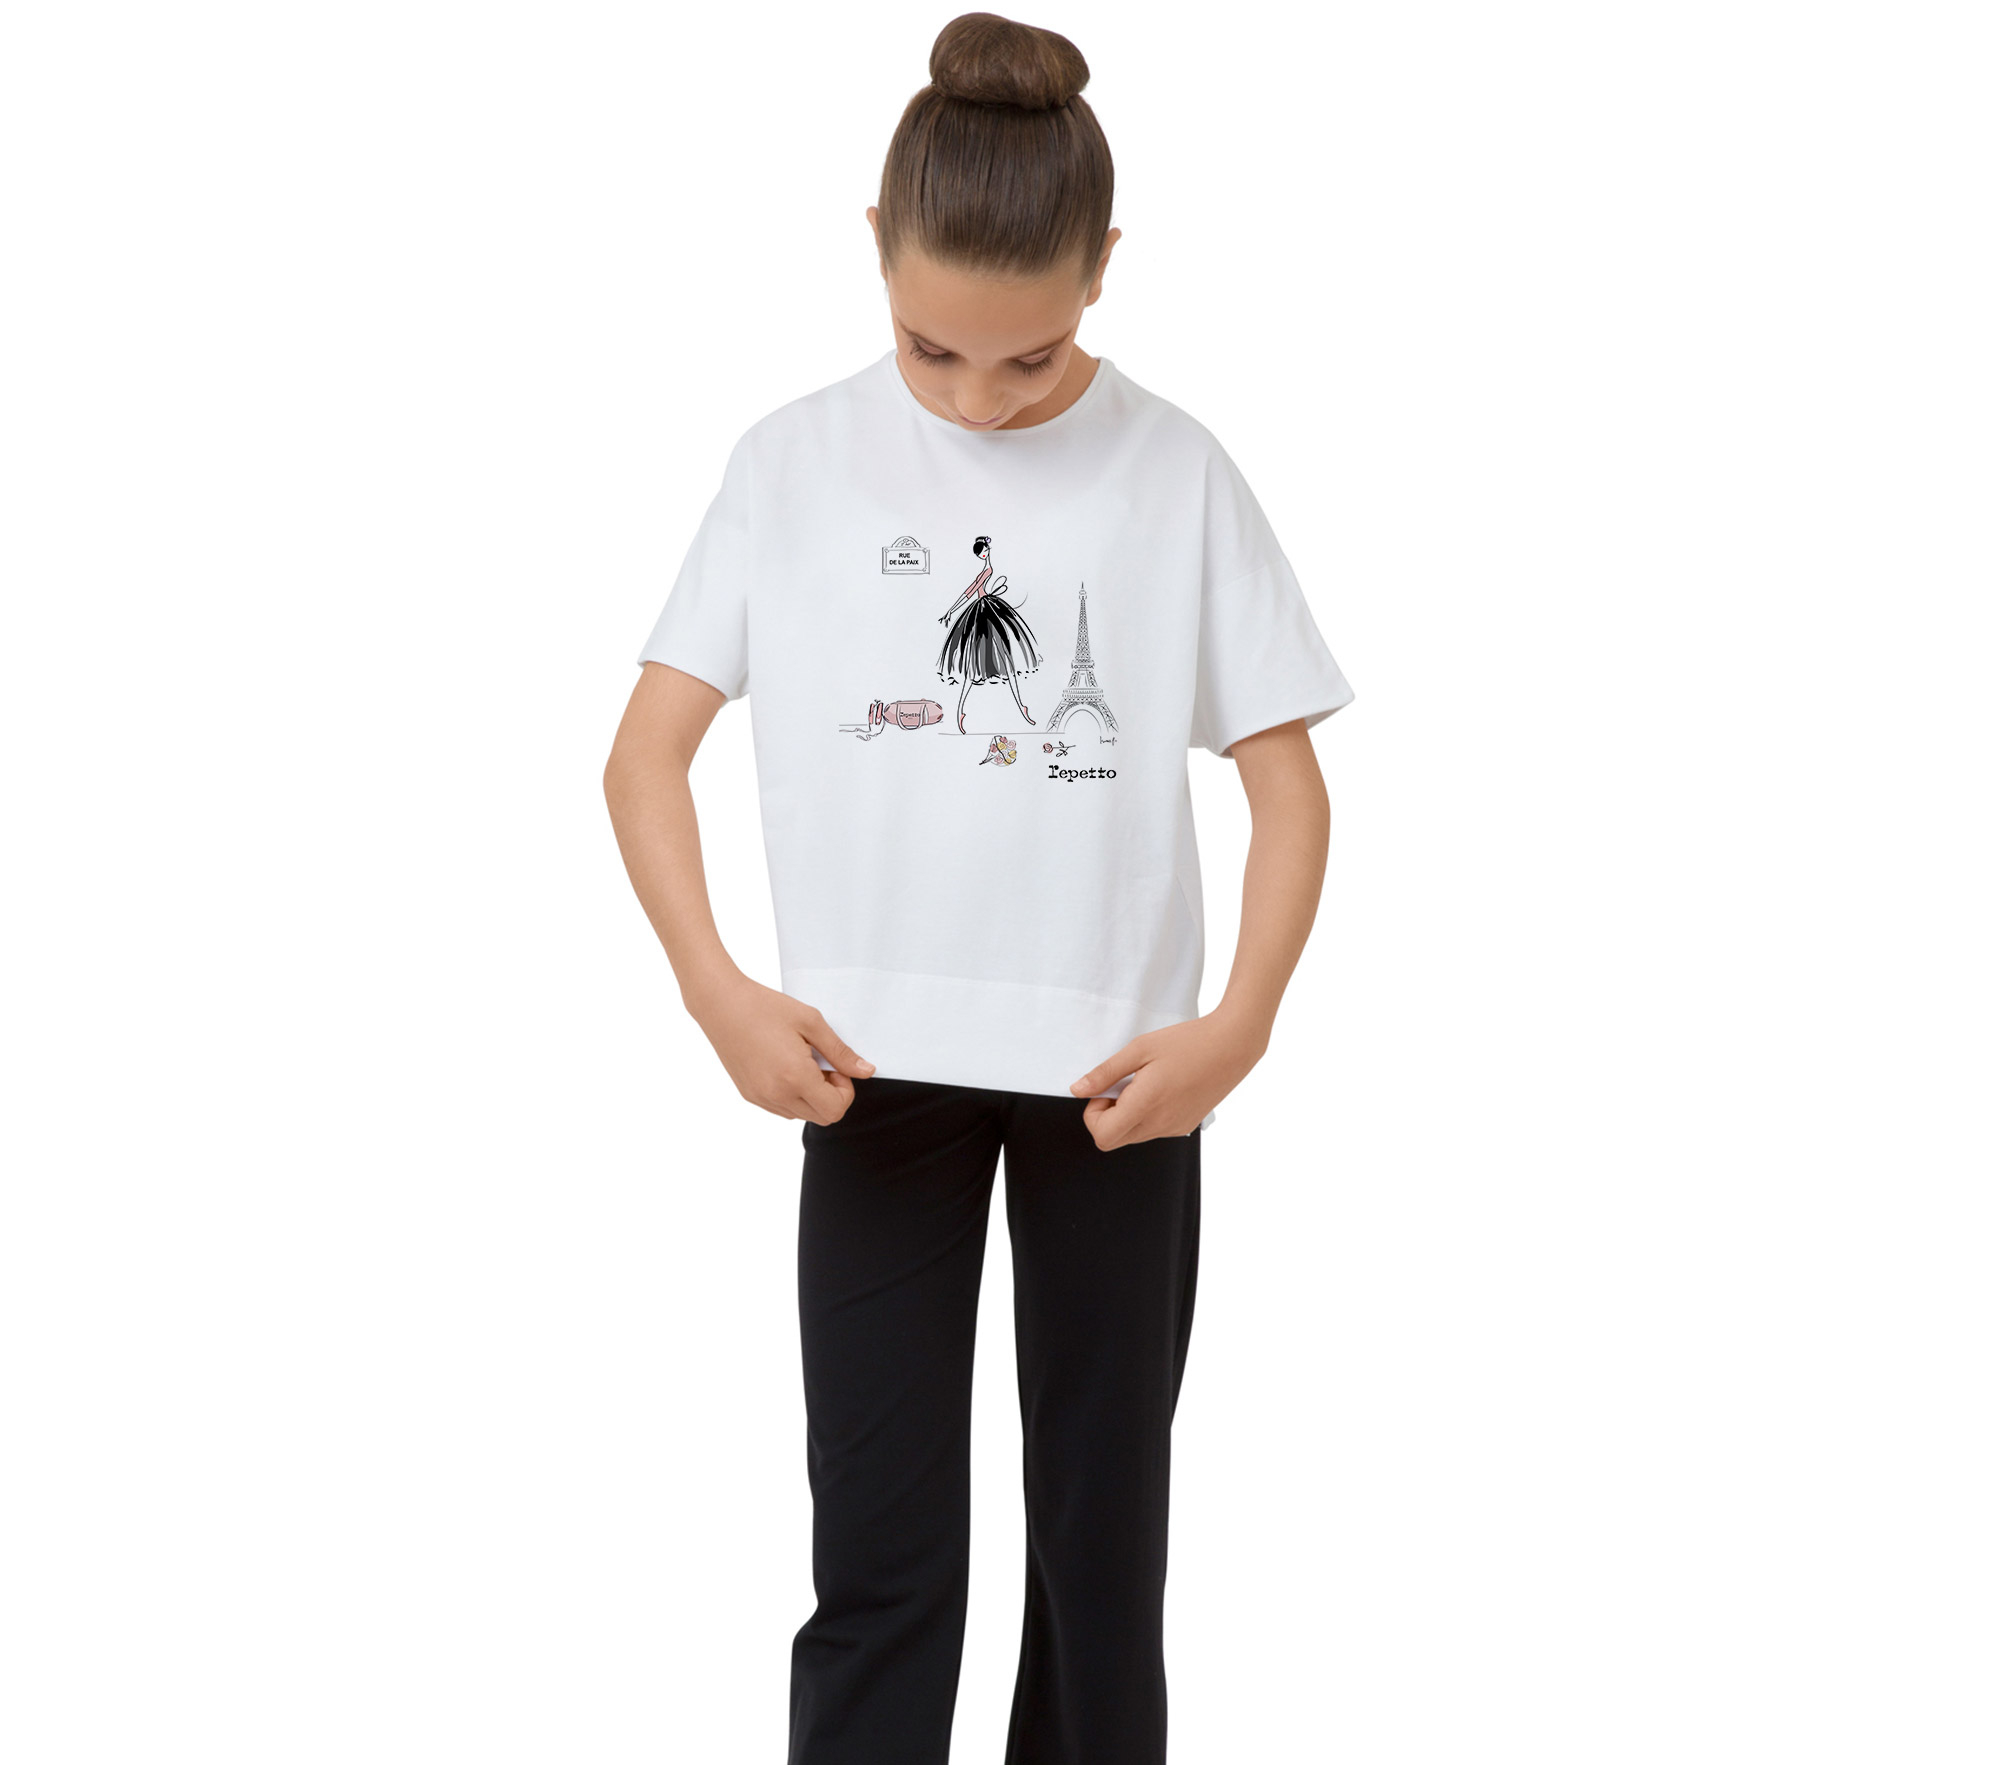 T-shirt La danseuse